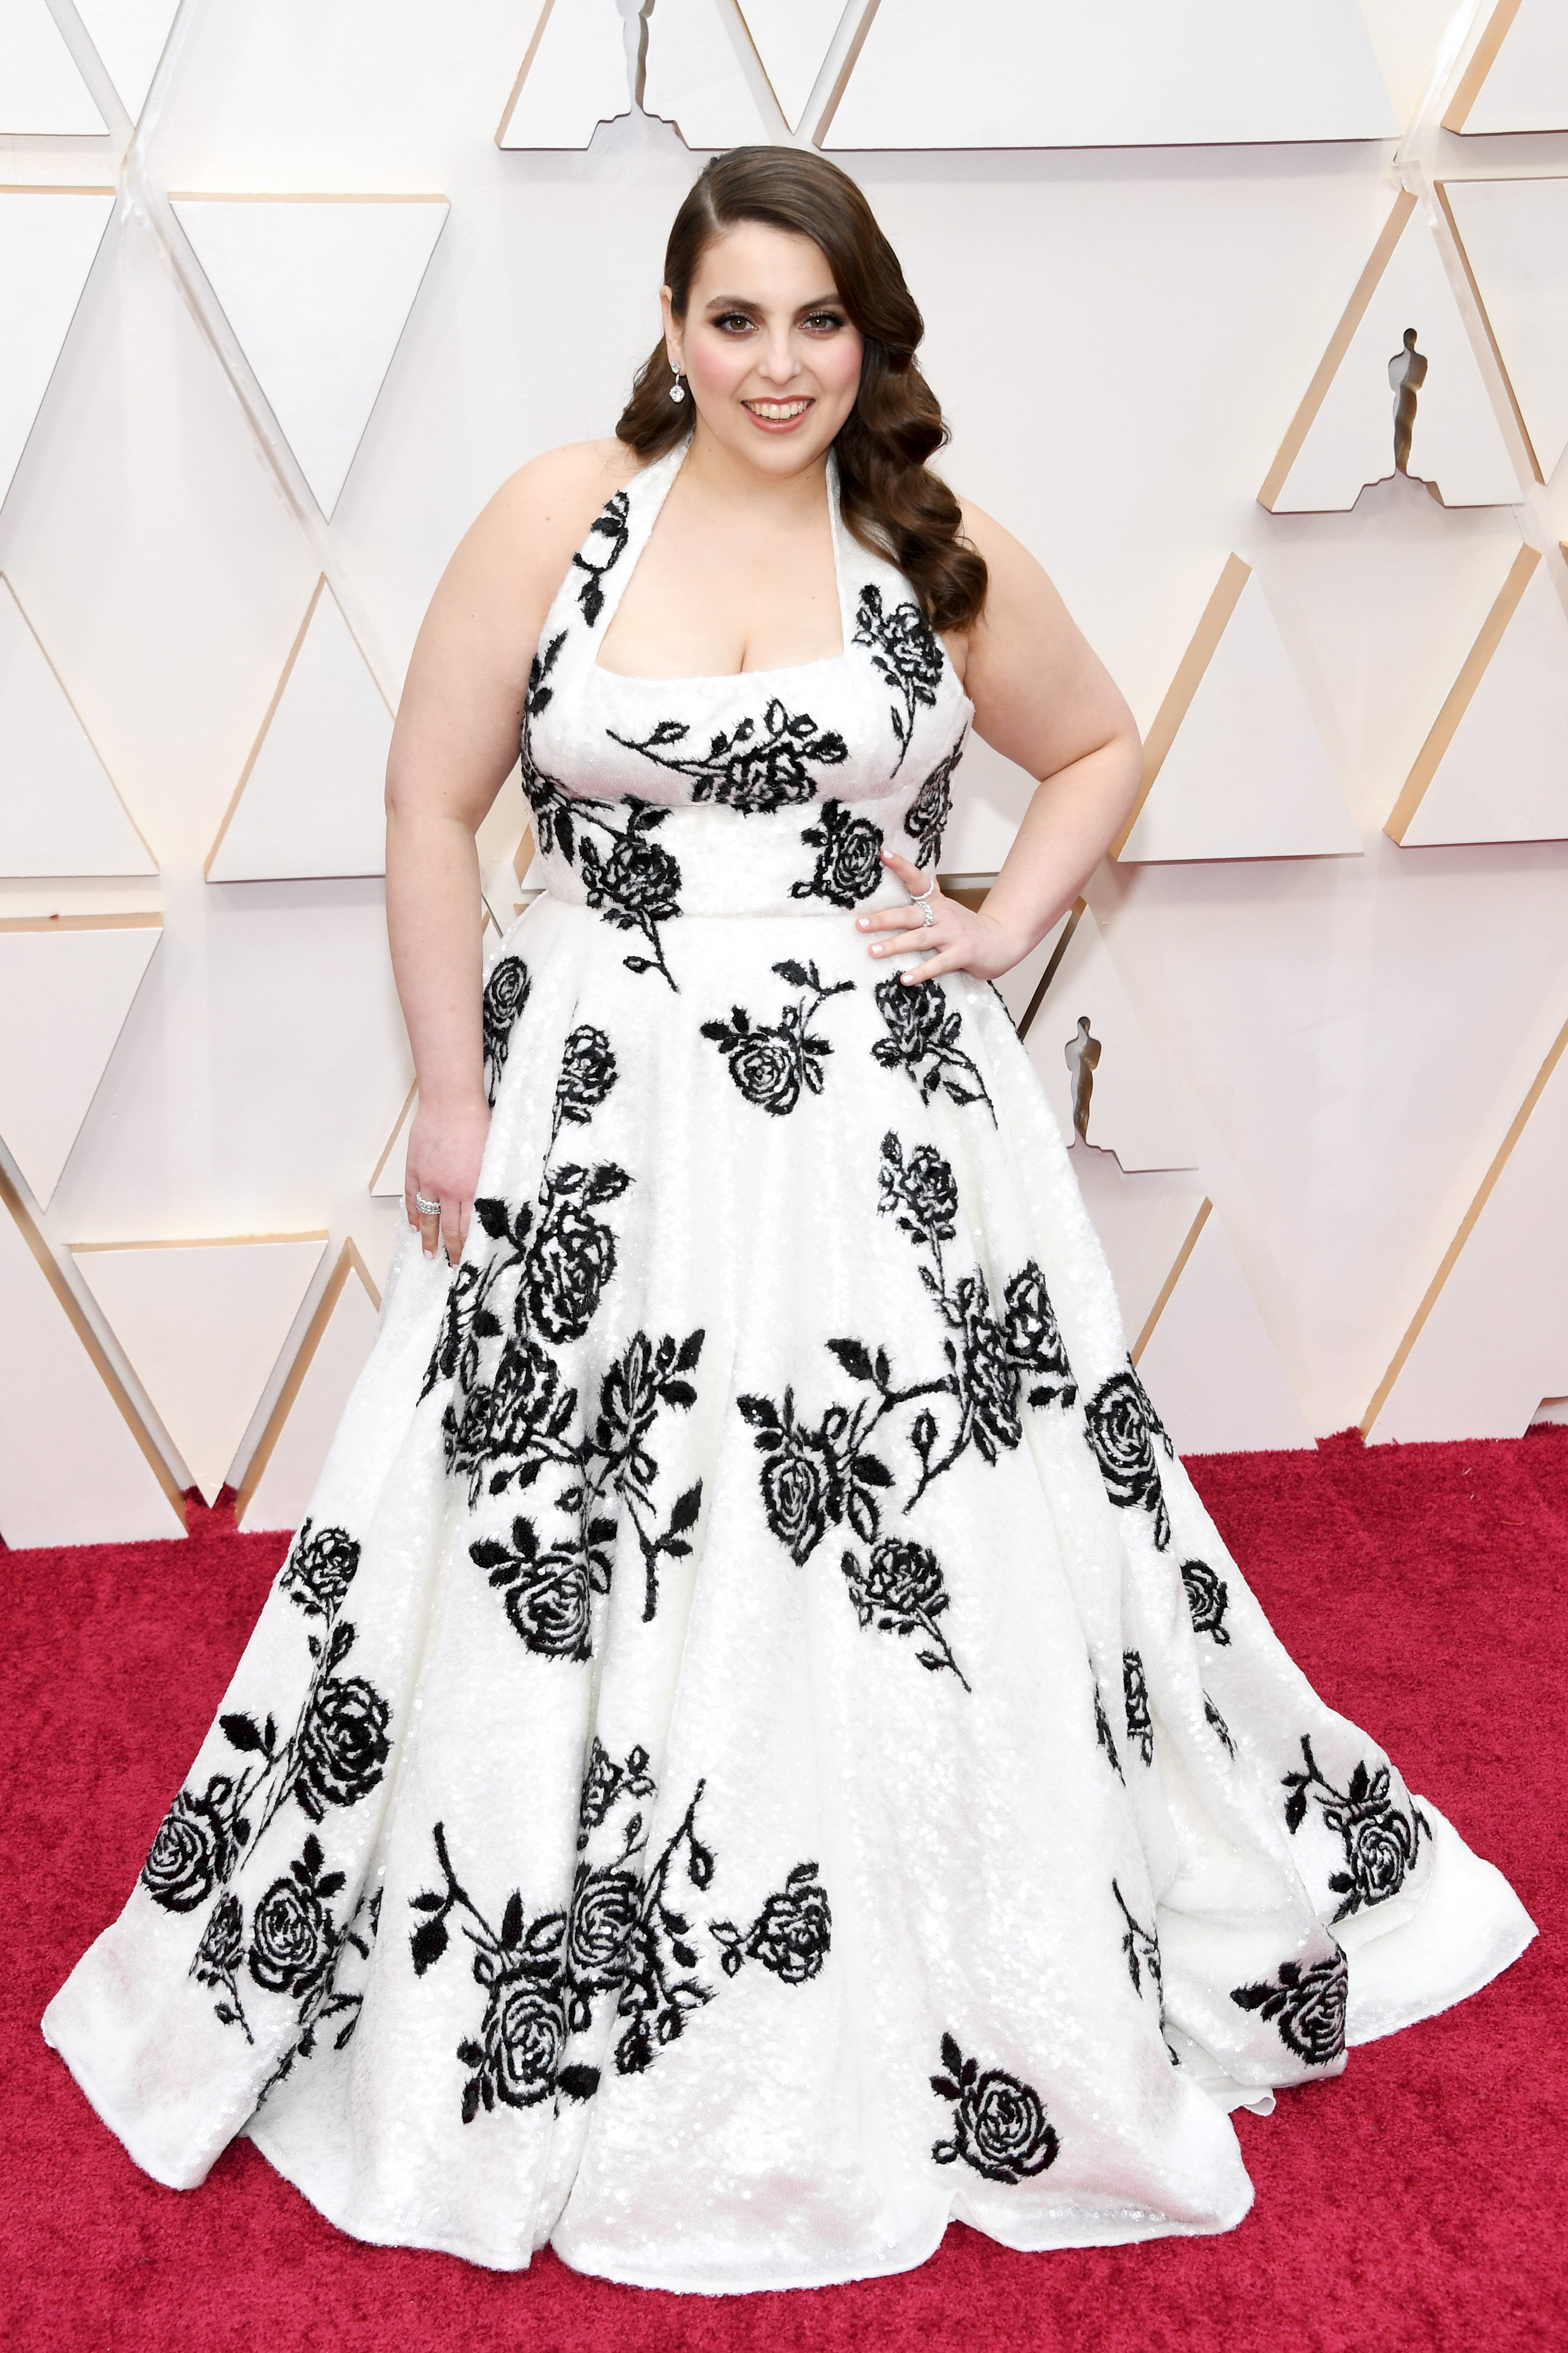 Beanie Feldstein attends the 92nd Annual Academy Awards at Hollywood and Highland on February 09, 2020 in Hollywood, California.| Source: Getty Images